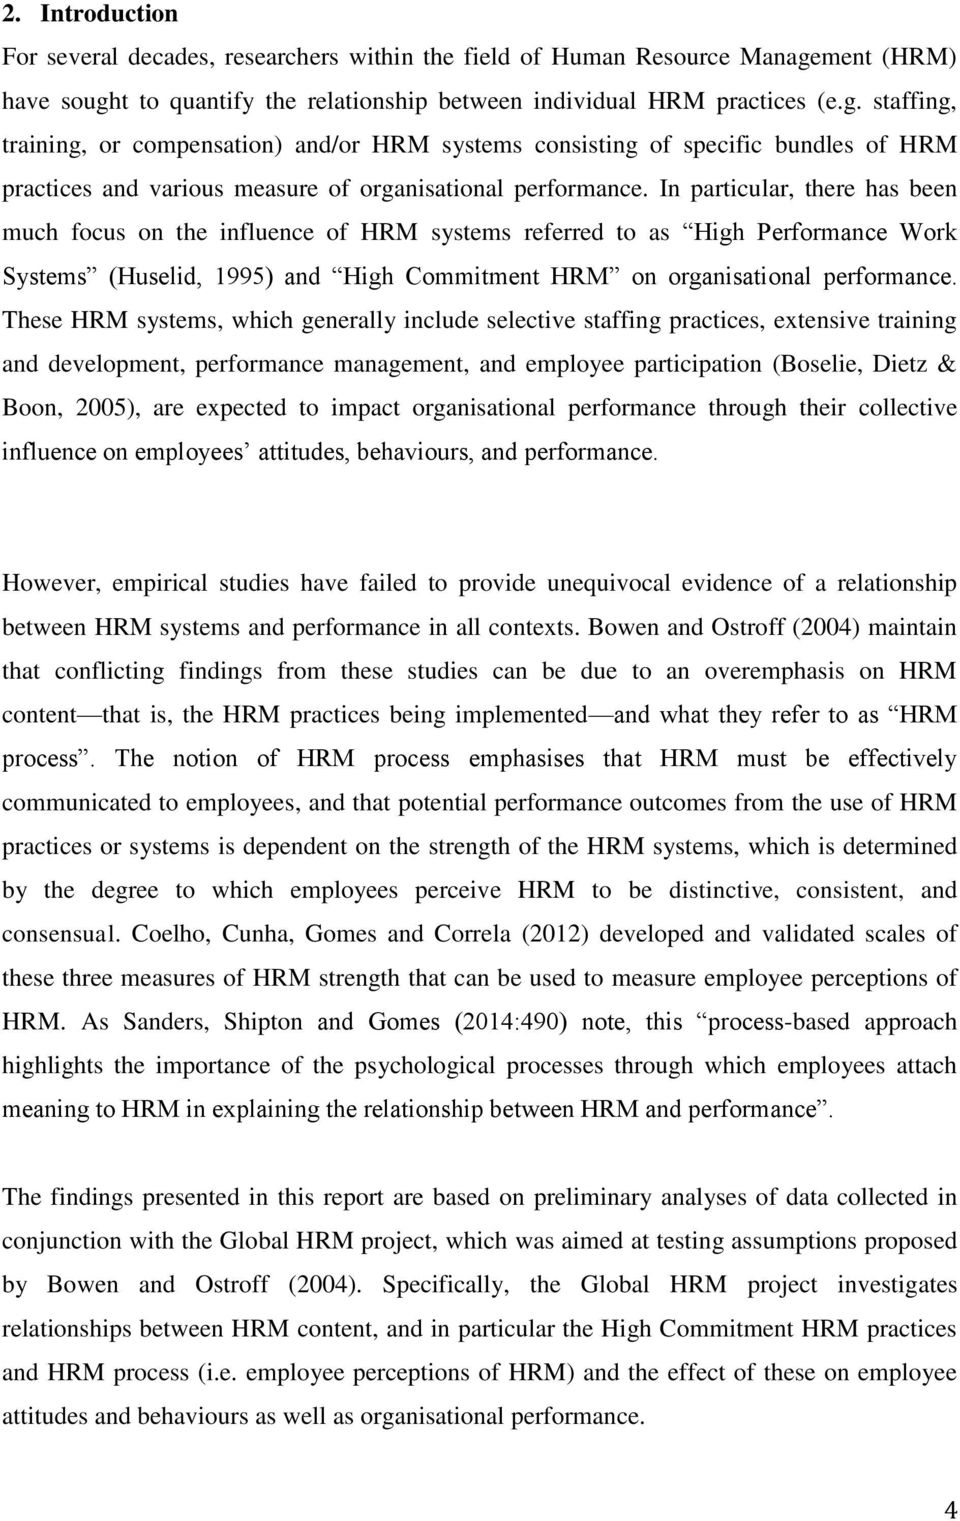 In particular, there has been much focus on the influence of HRM systems referred to as High Performance Work Systems (Huselid, 1995) and High Commitment HRM on organisational performance.